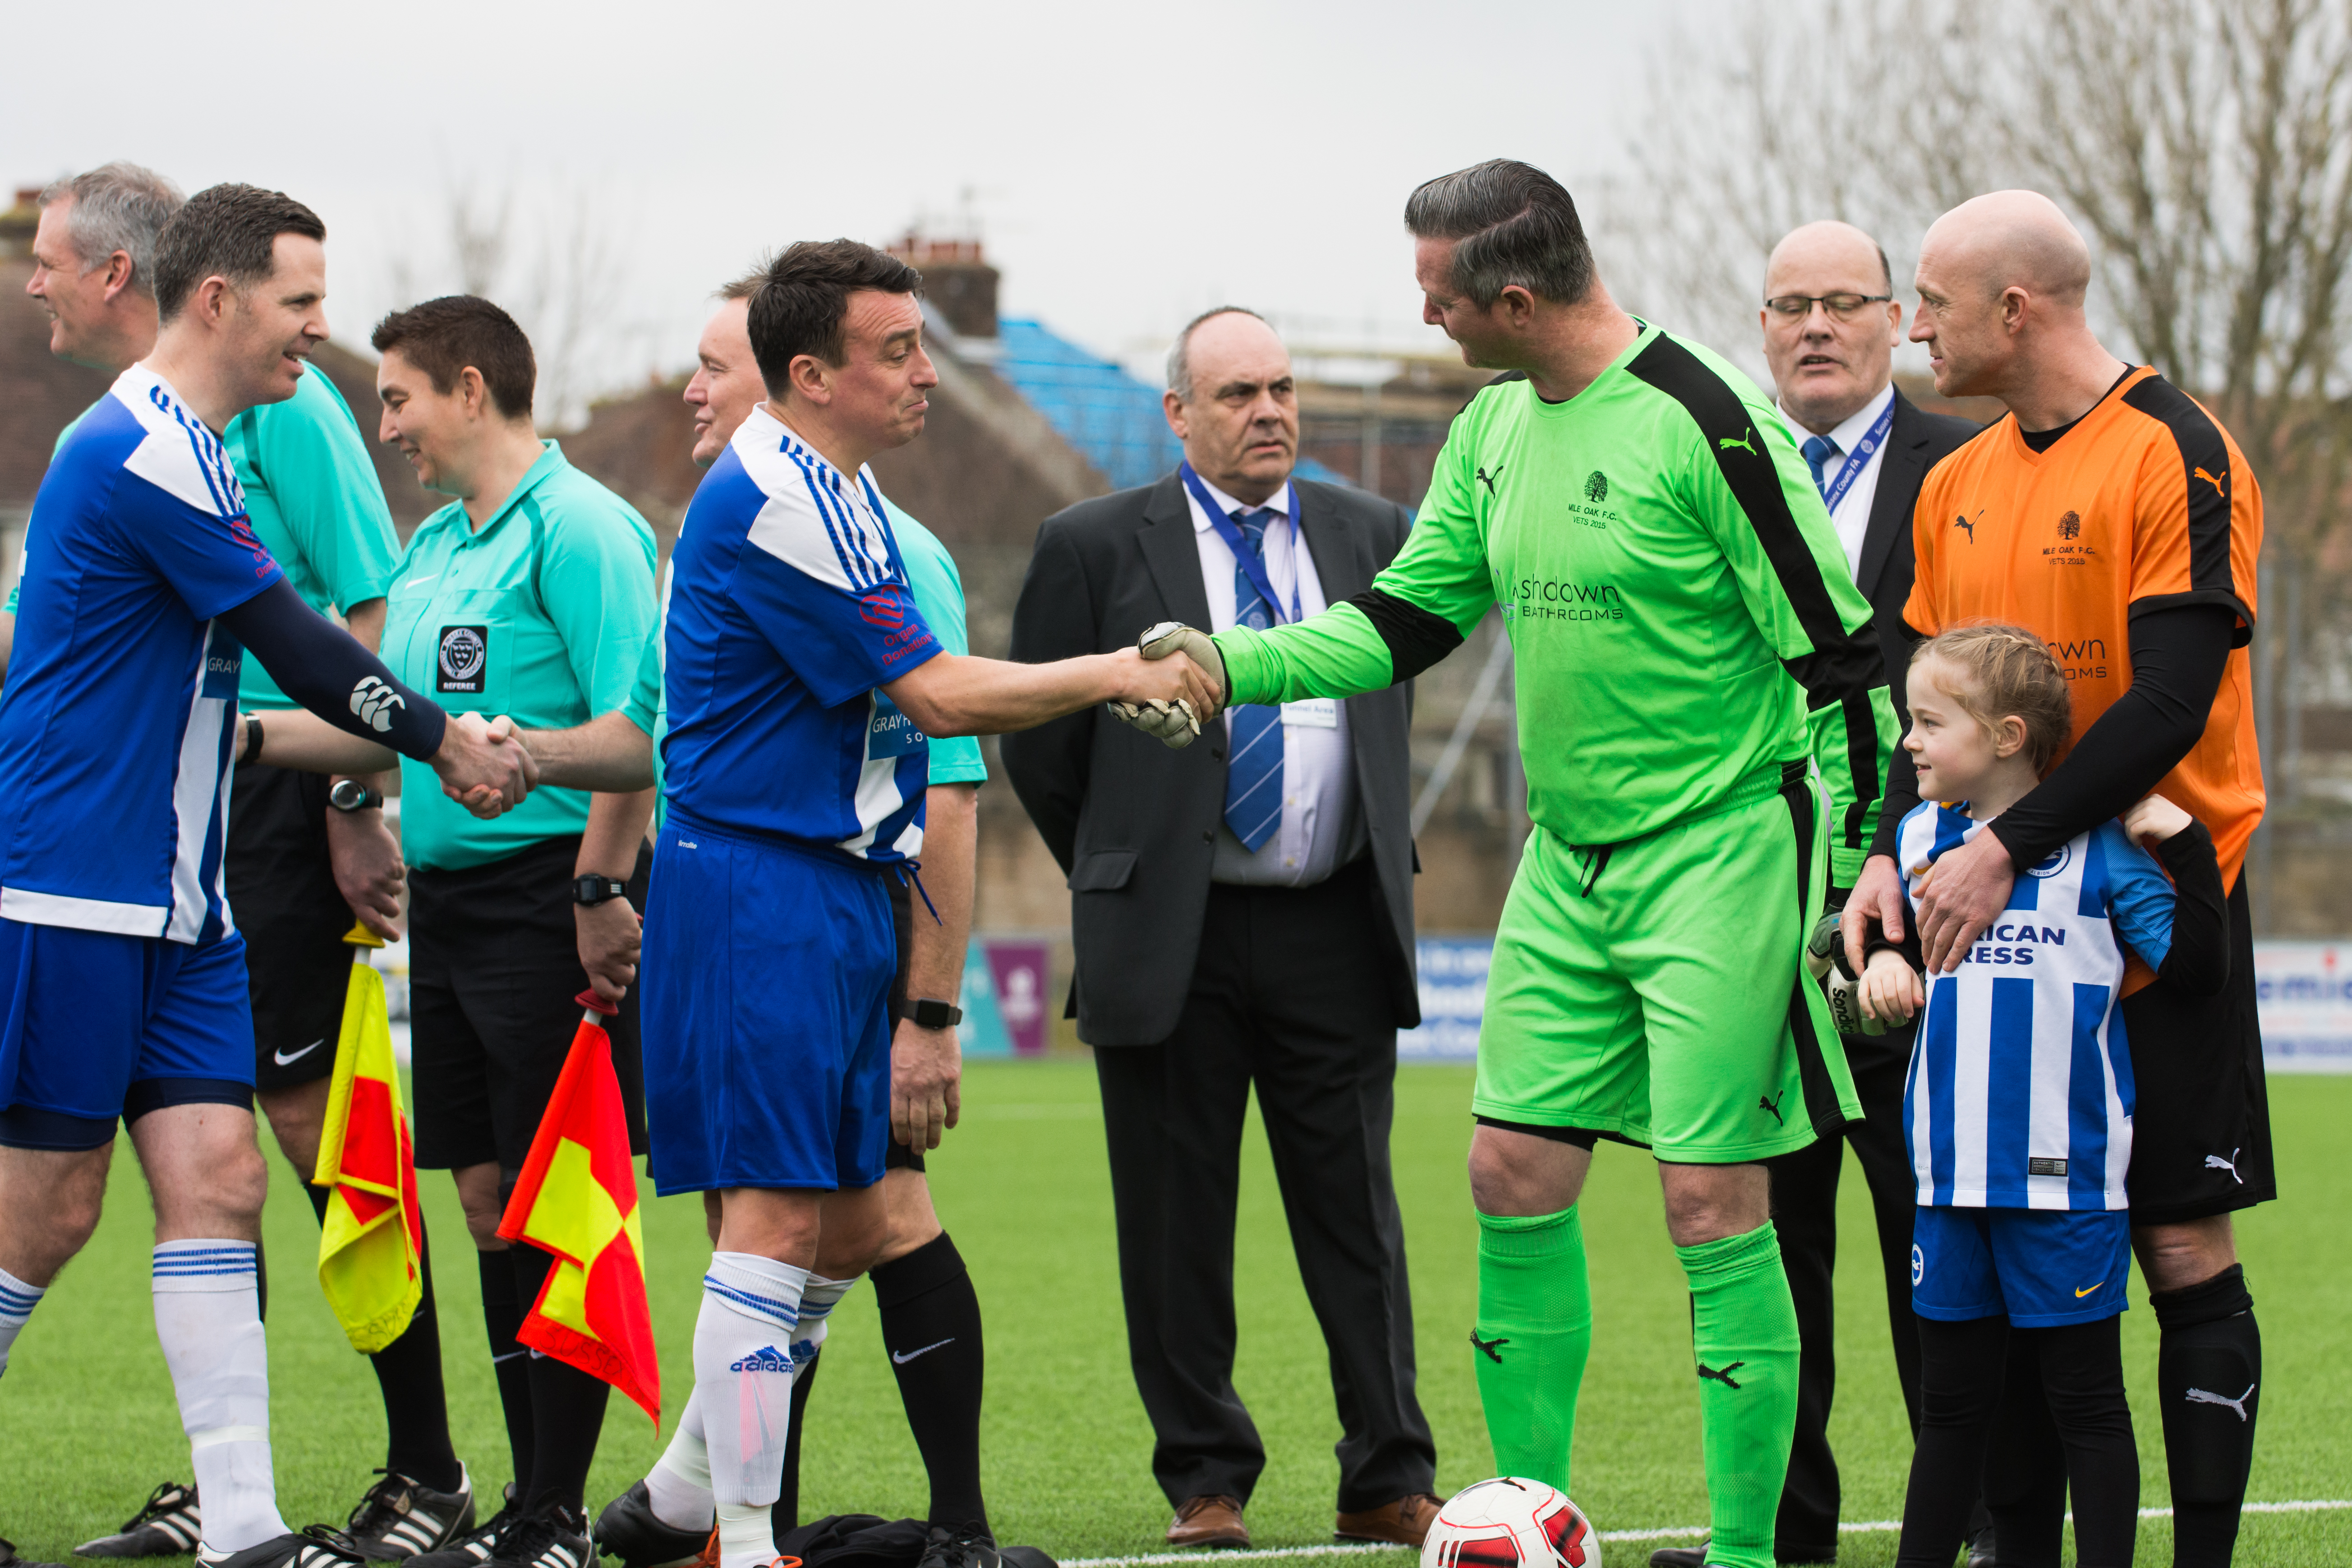 Mile Oak Veterans vs Haywards Heath Town Veterans, SCFA Cup Final 18.02.18 12 DAVID_JEFFERY